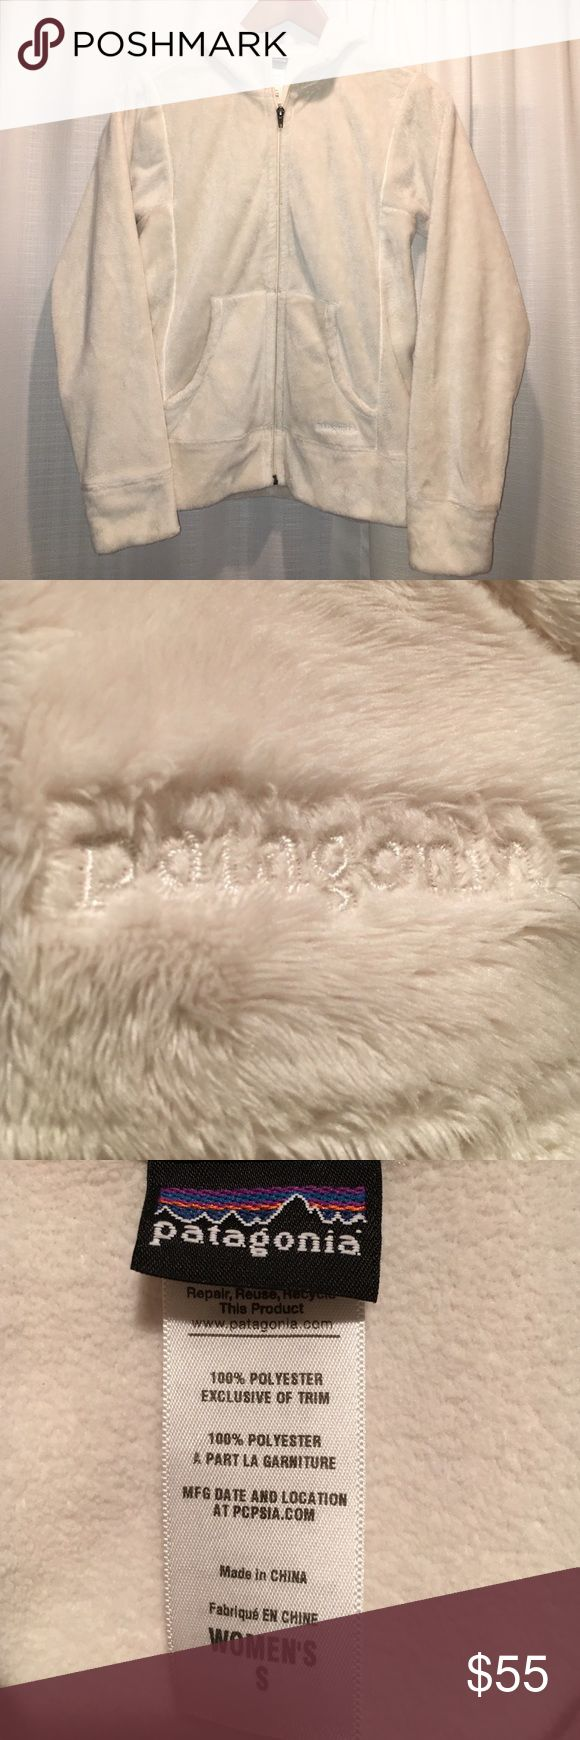 Patagonia Fleece Jacket Women's Patagonia Fleece Jacket. Size Small. Off White/Cream. Super soft, like The NorthFace osito. No flaws. Excellent condition. Non smoking home. Patagonia Jackets & Coats